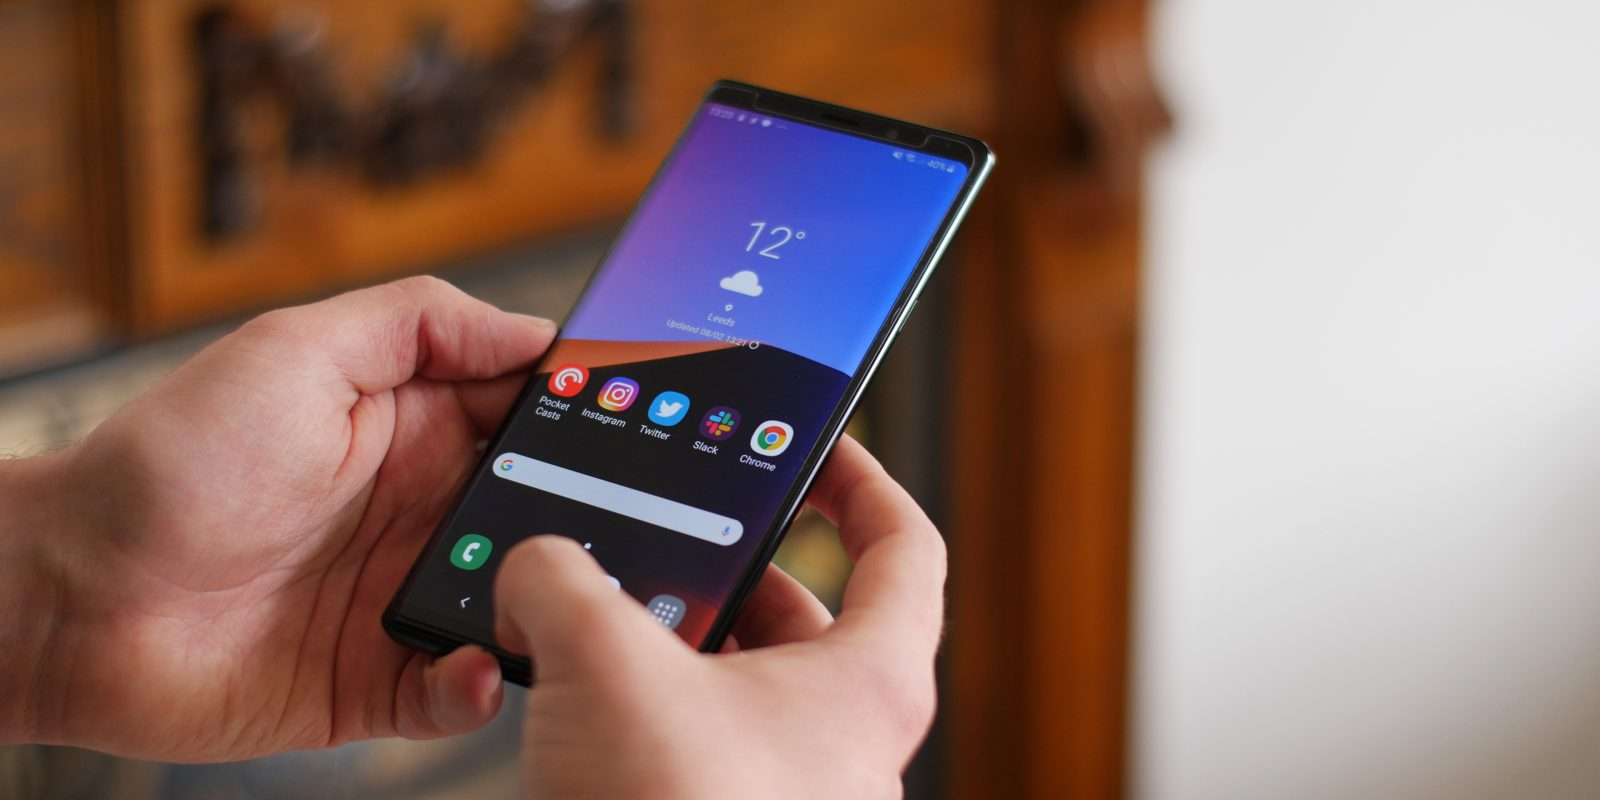 Samsung Galaxy Android Pie Update: When Will My Galaxy Get Android 9.0?